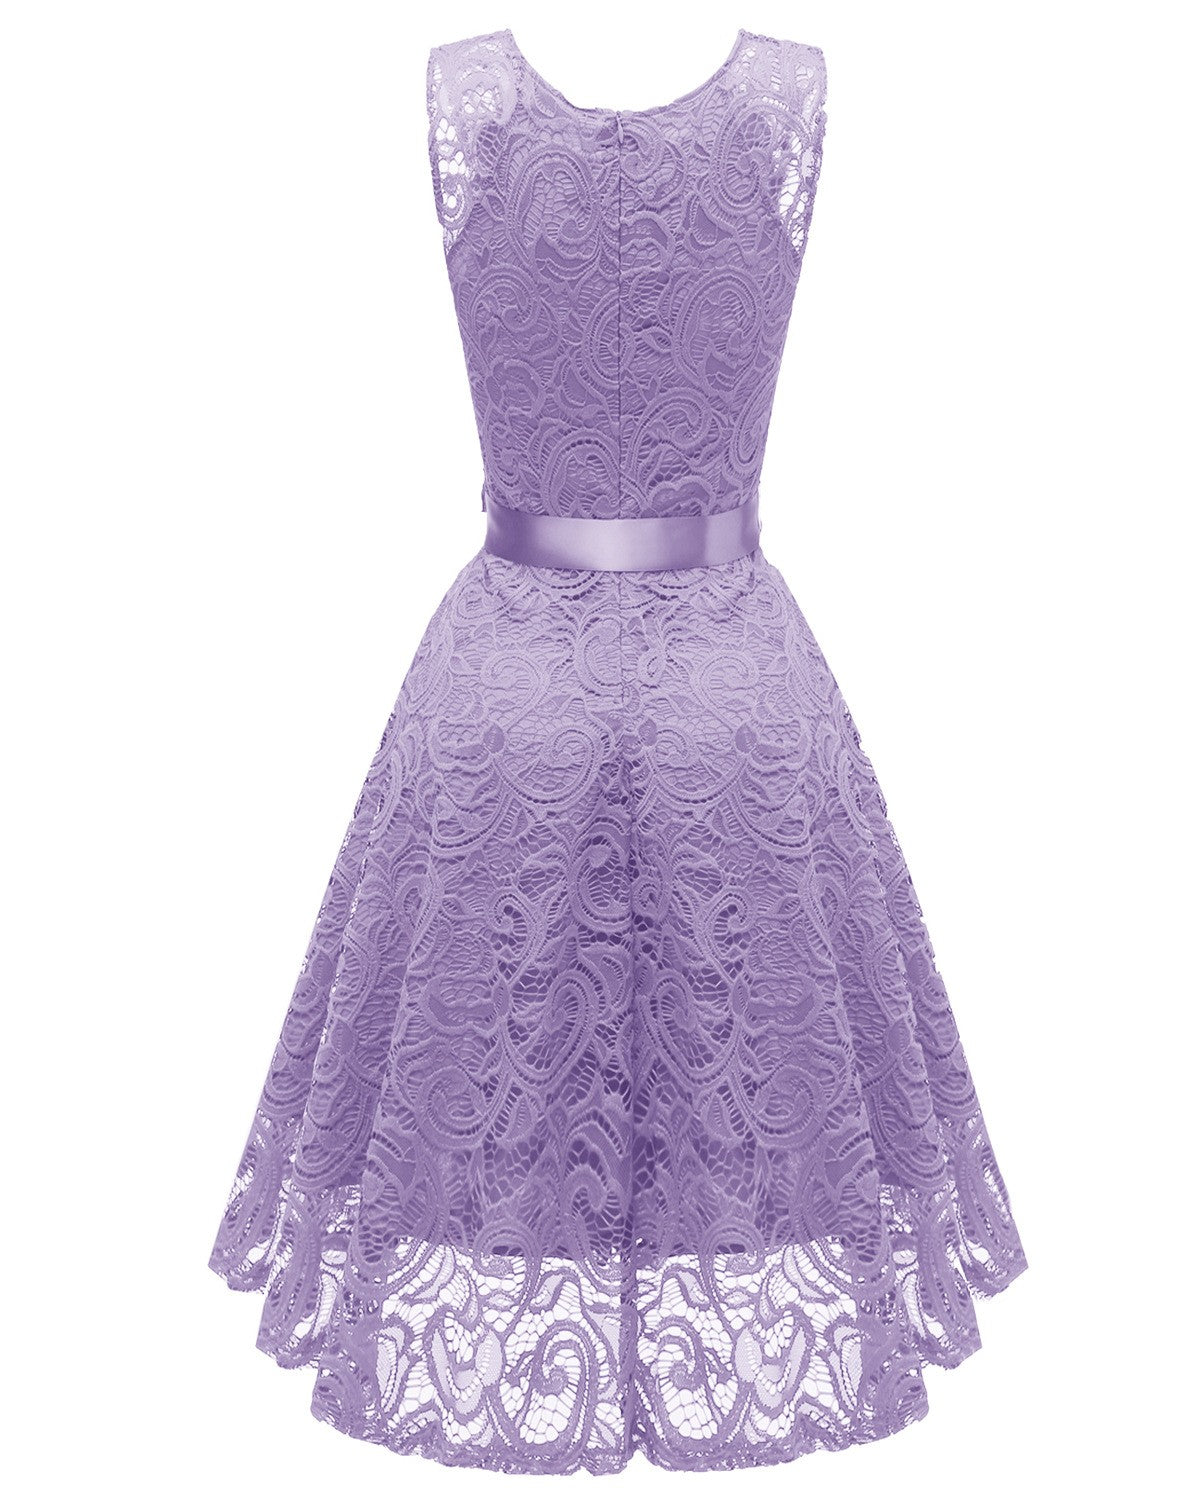 V Neck Lace A Line Sleeveless Dress